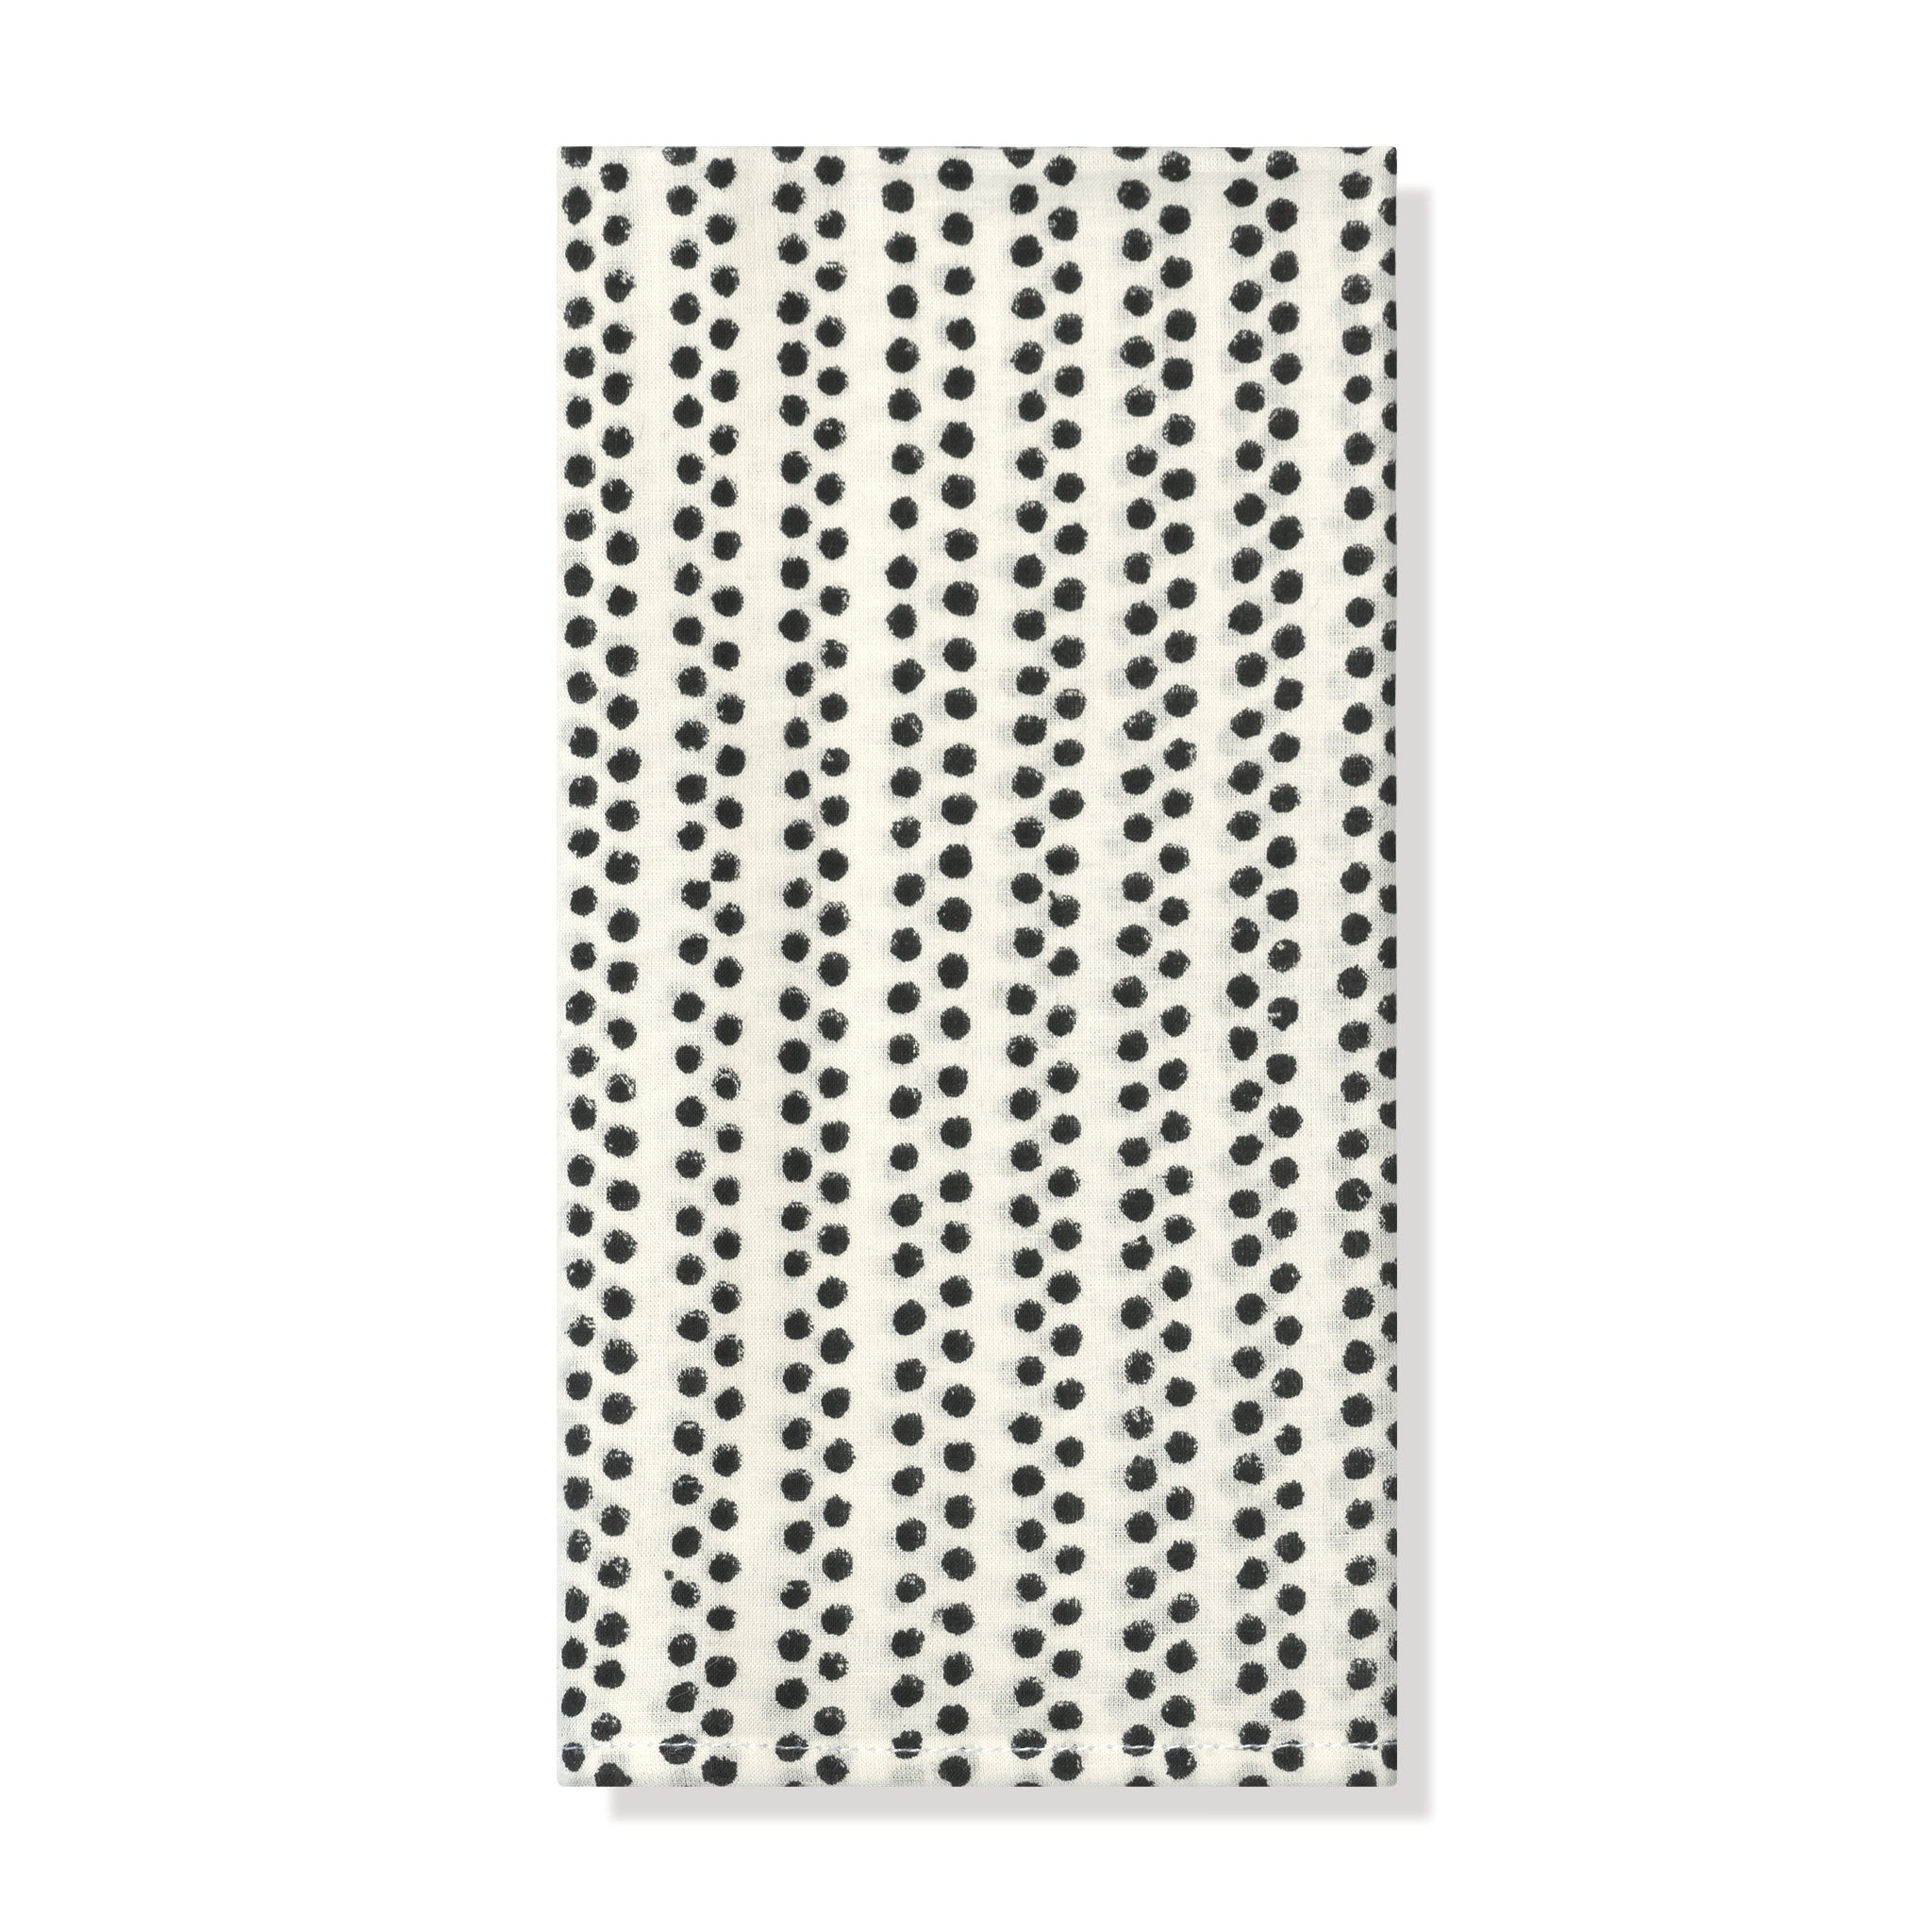 ONYX DOT NAPKIN, SET OF 2